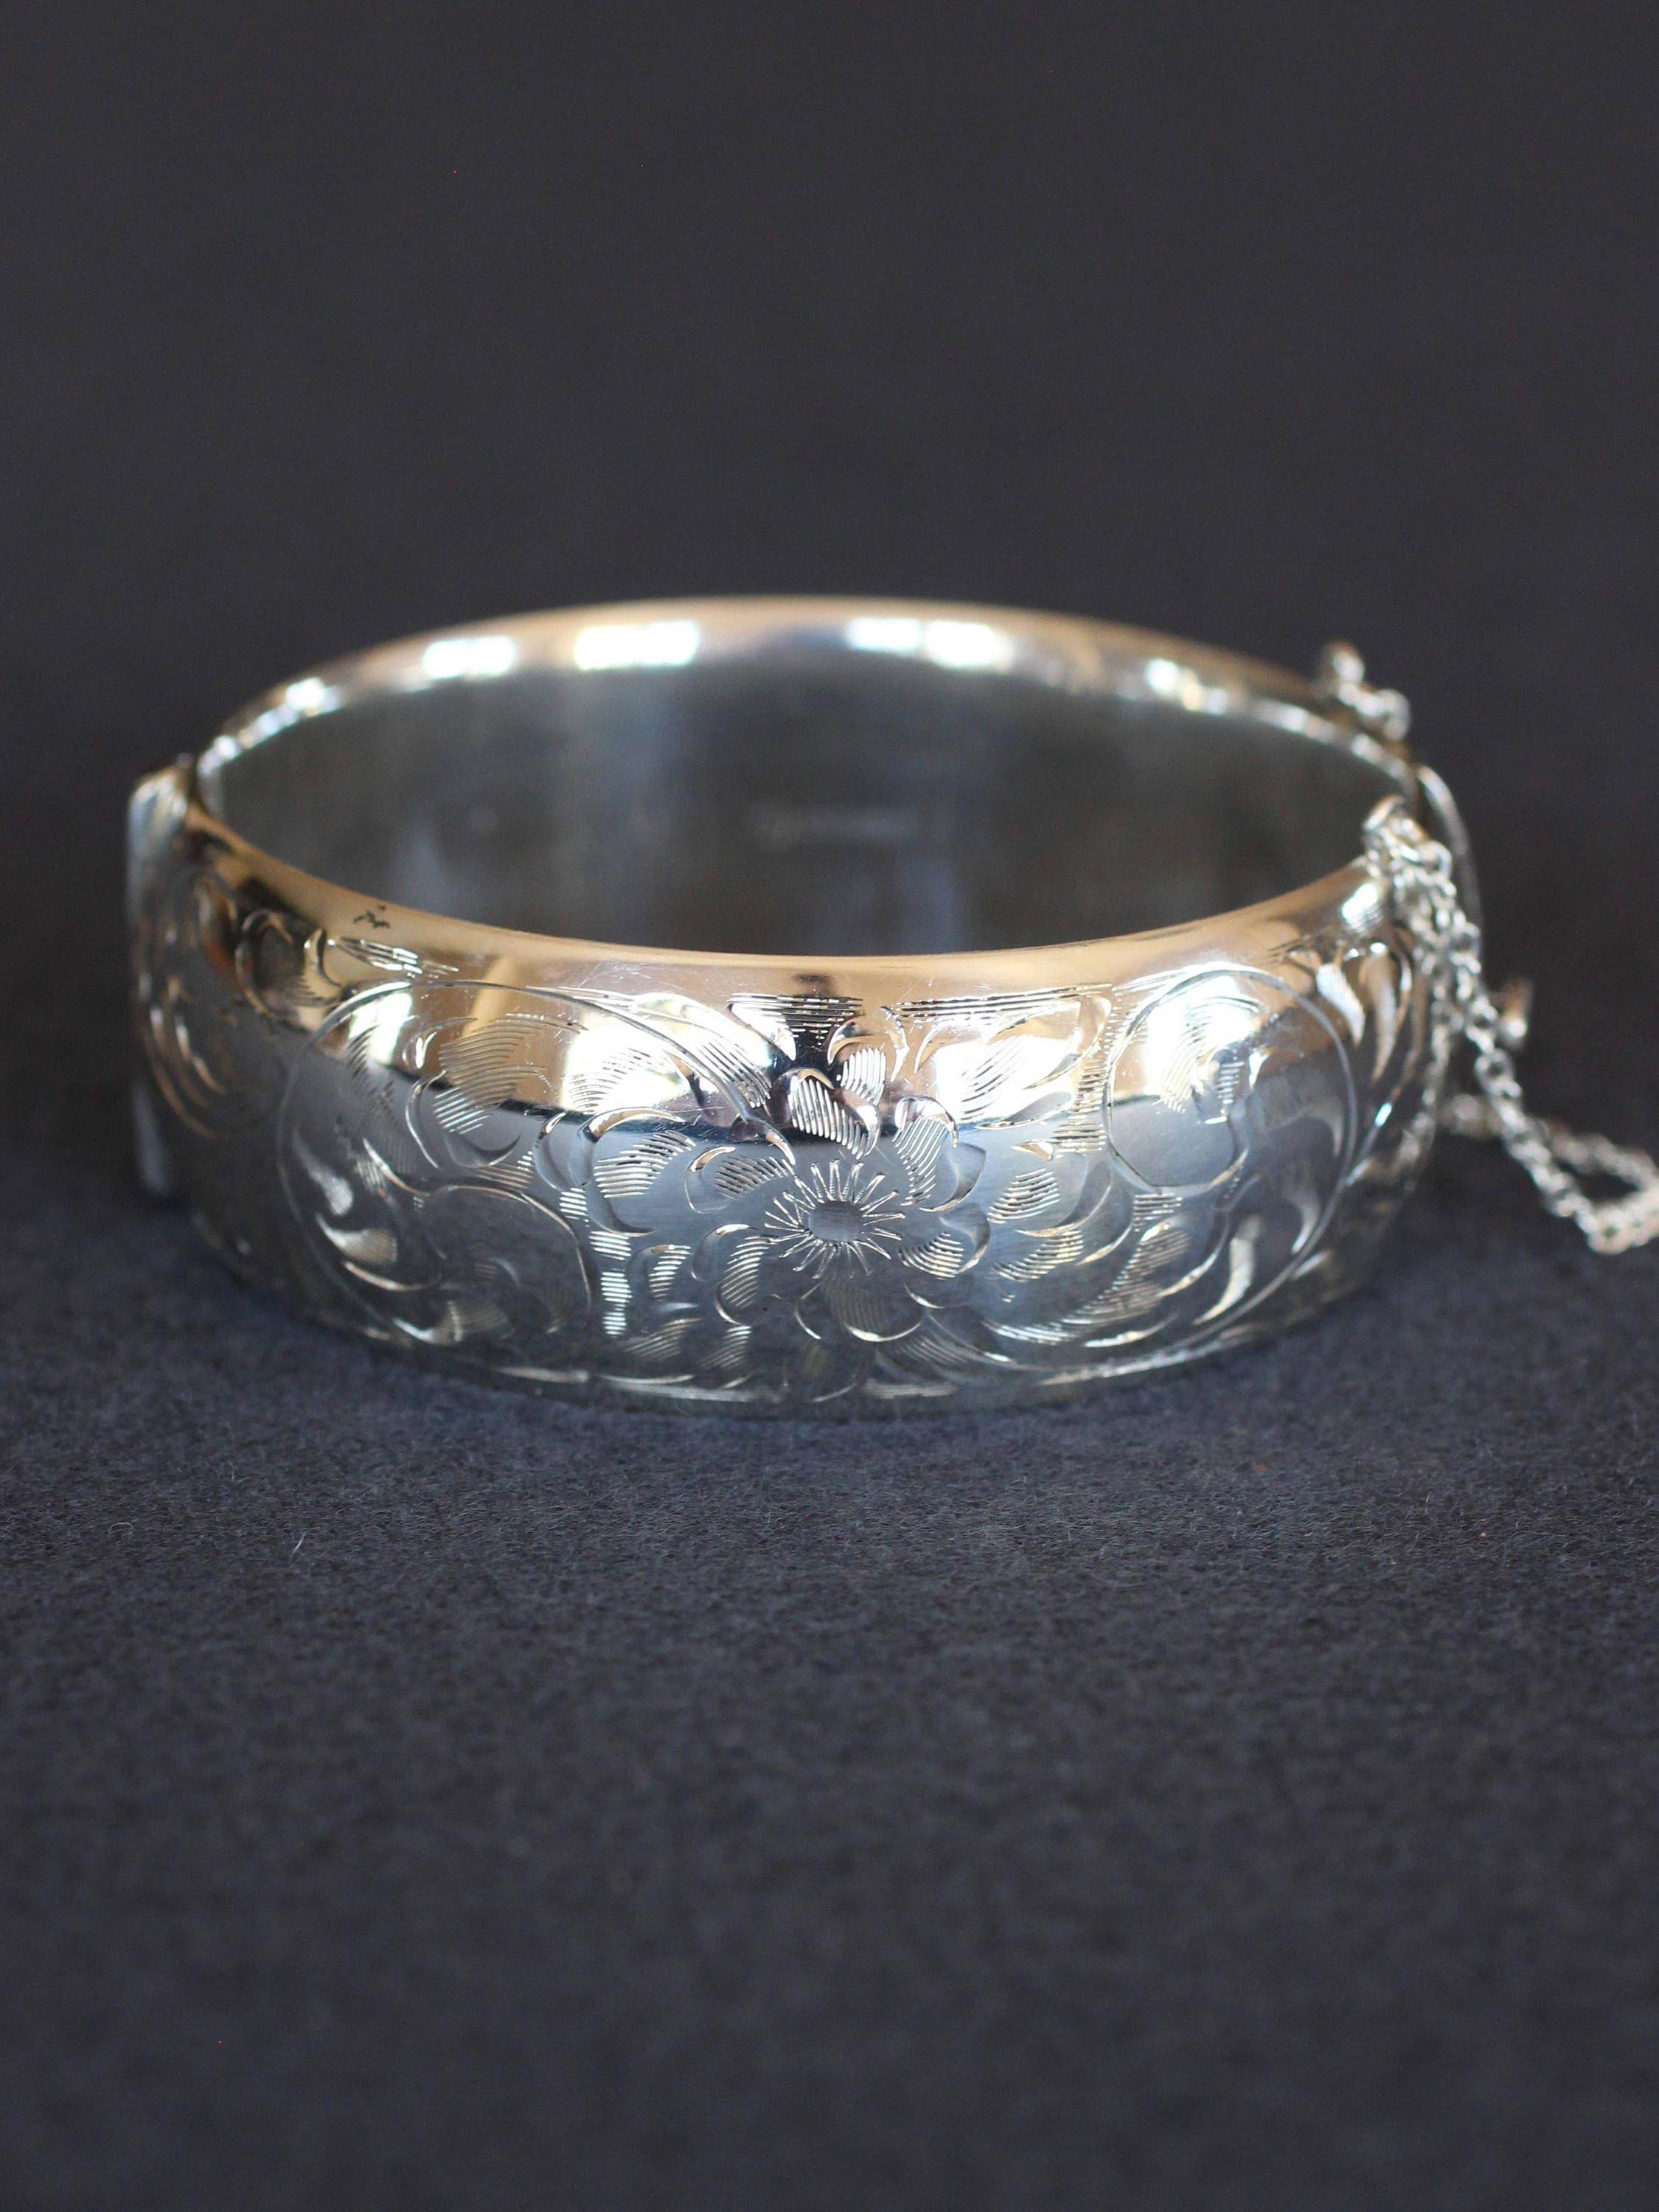 main jensen bangle bangles large pip silver p s is astrid georg gump